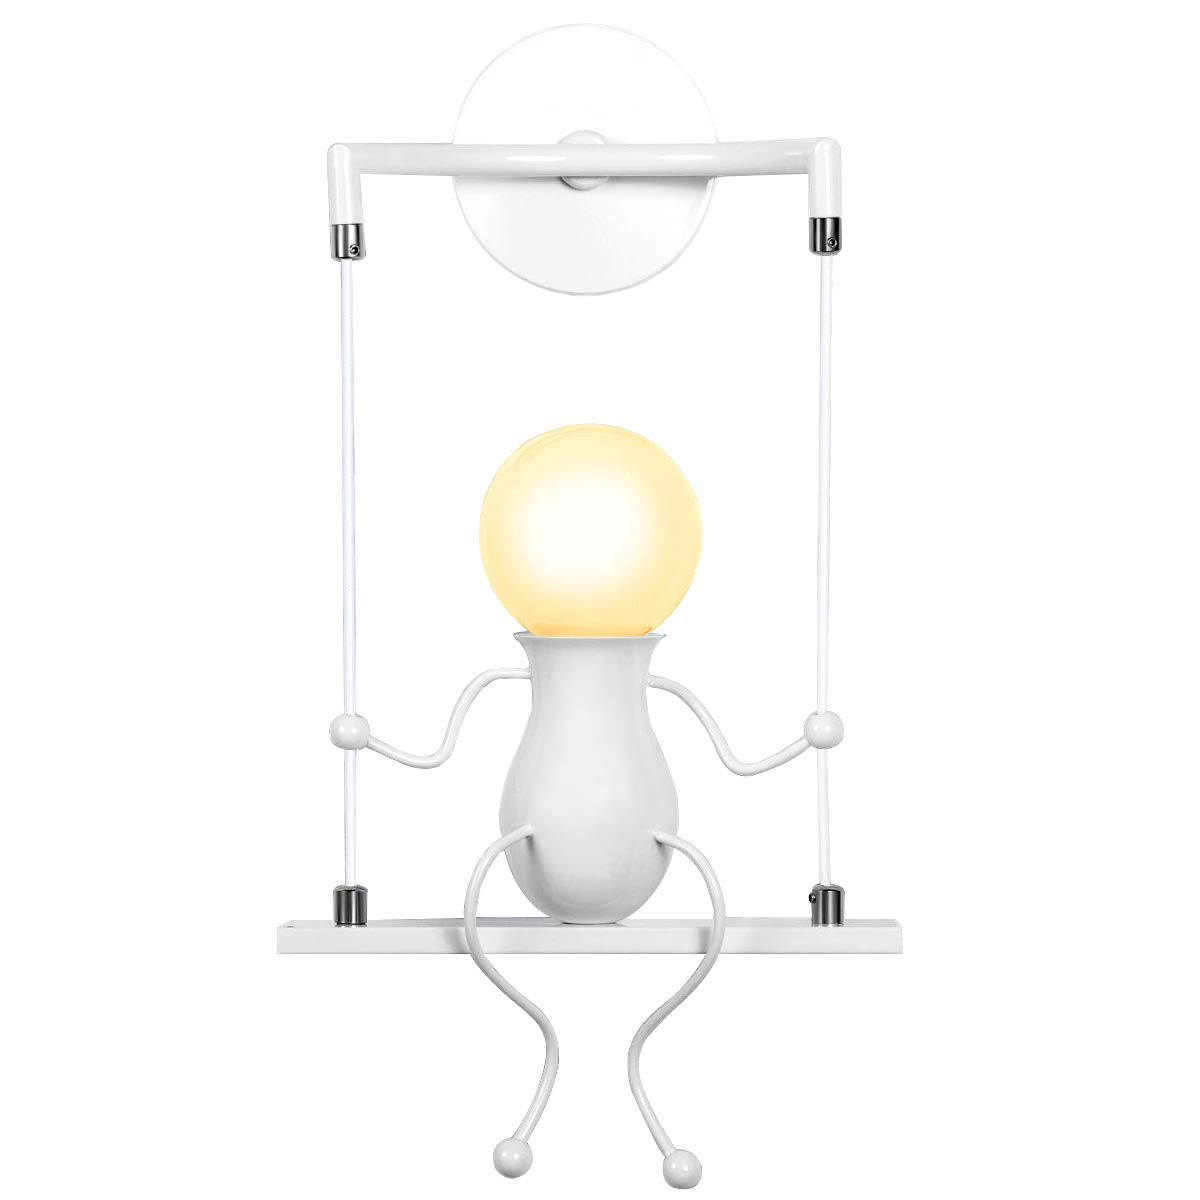 KAWELL Humanoid Creative Wall Light Modern Wall Lamp Simple Wall Sconce Art Deco Max 60W E27 Base Iron Holder for Children Room, Bedroom Bedside, Stairs, Hallway, Restaurant, Kitchen, Black [Energy Class A+]